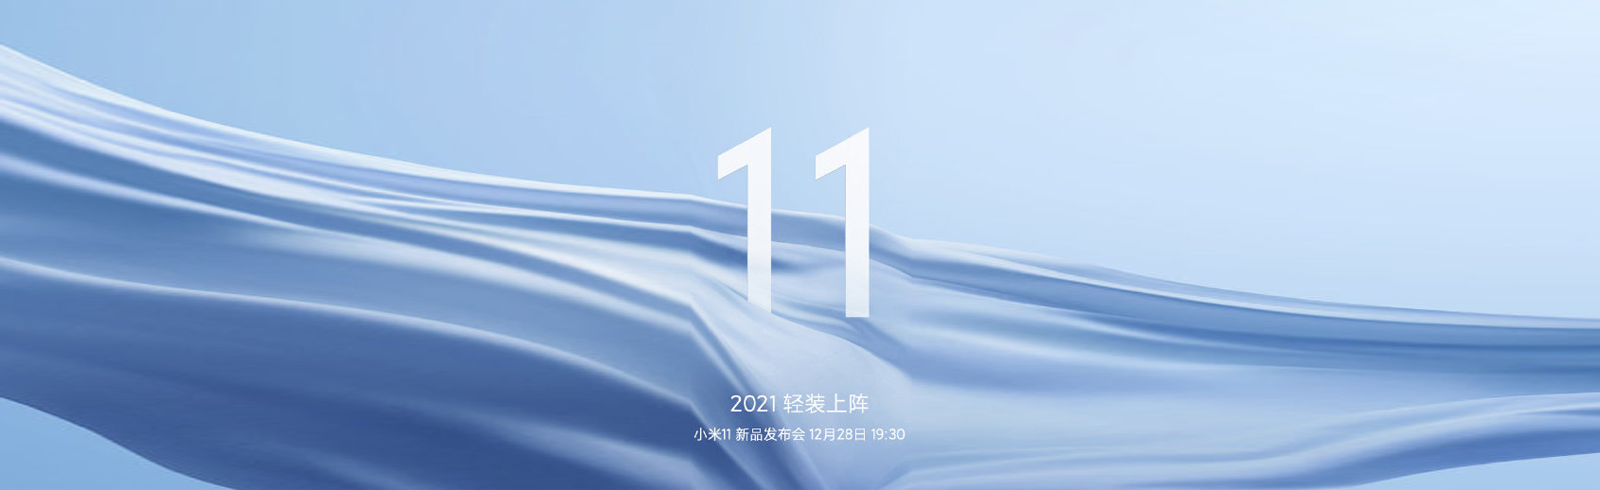 Xiaomi Mi 11 series will be announced on December 28, will pack a 108MP camera